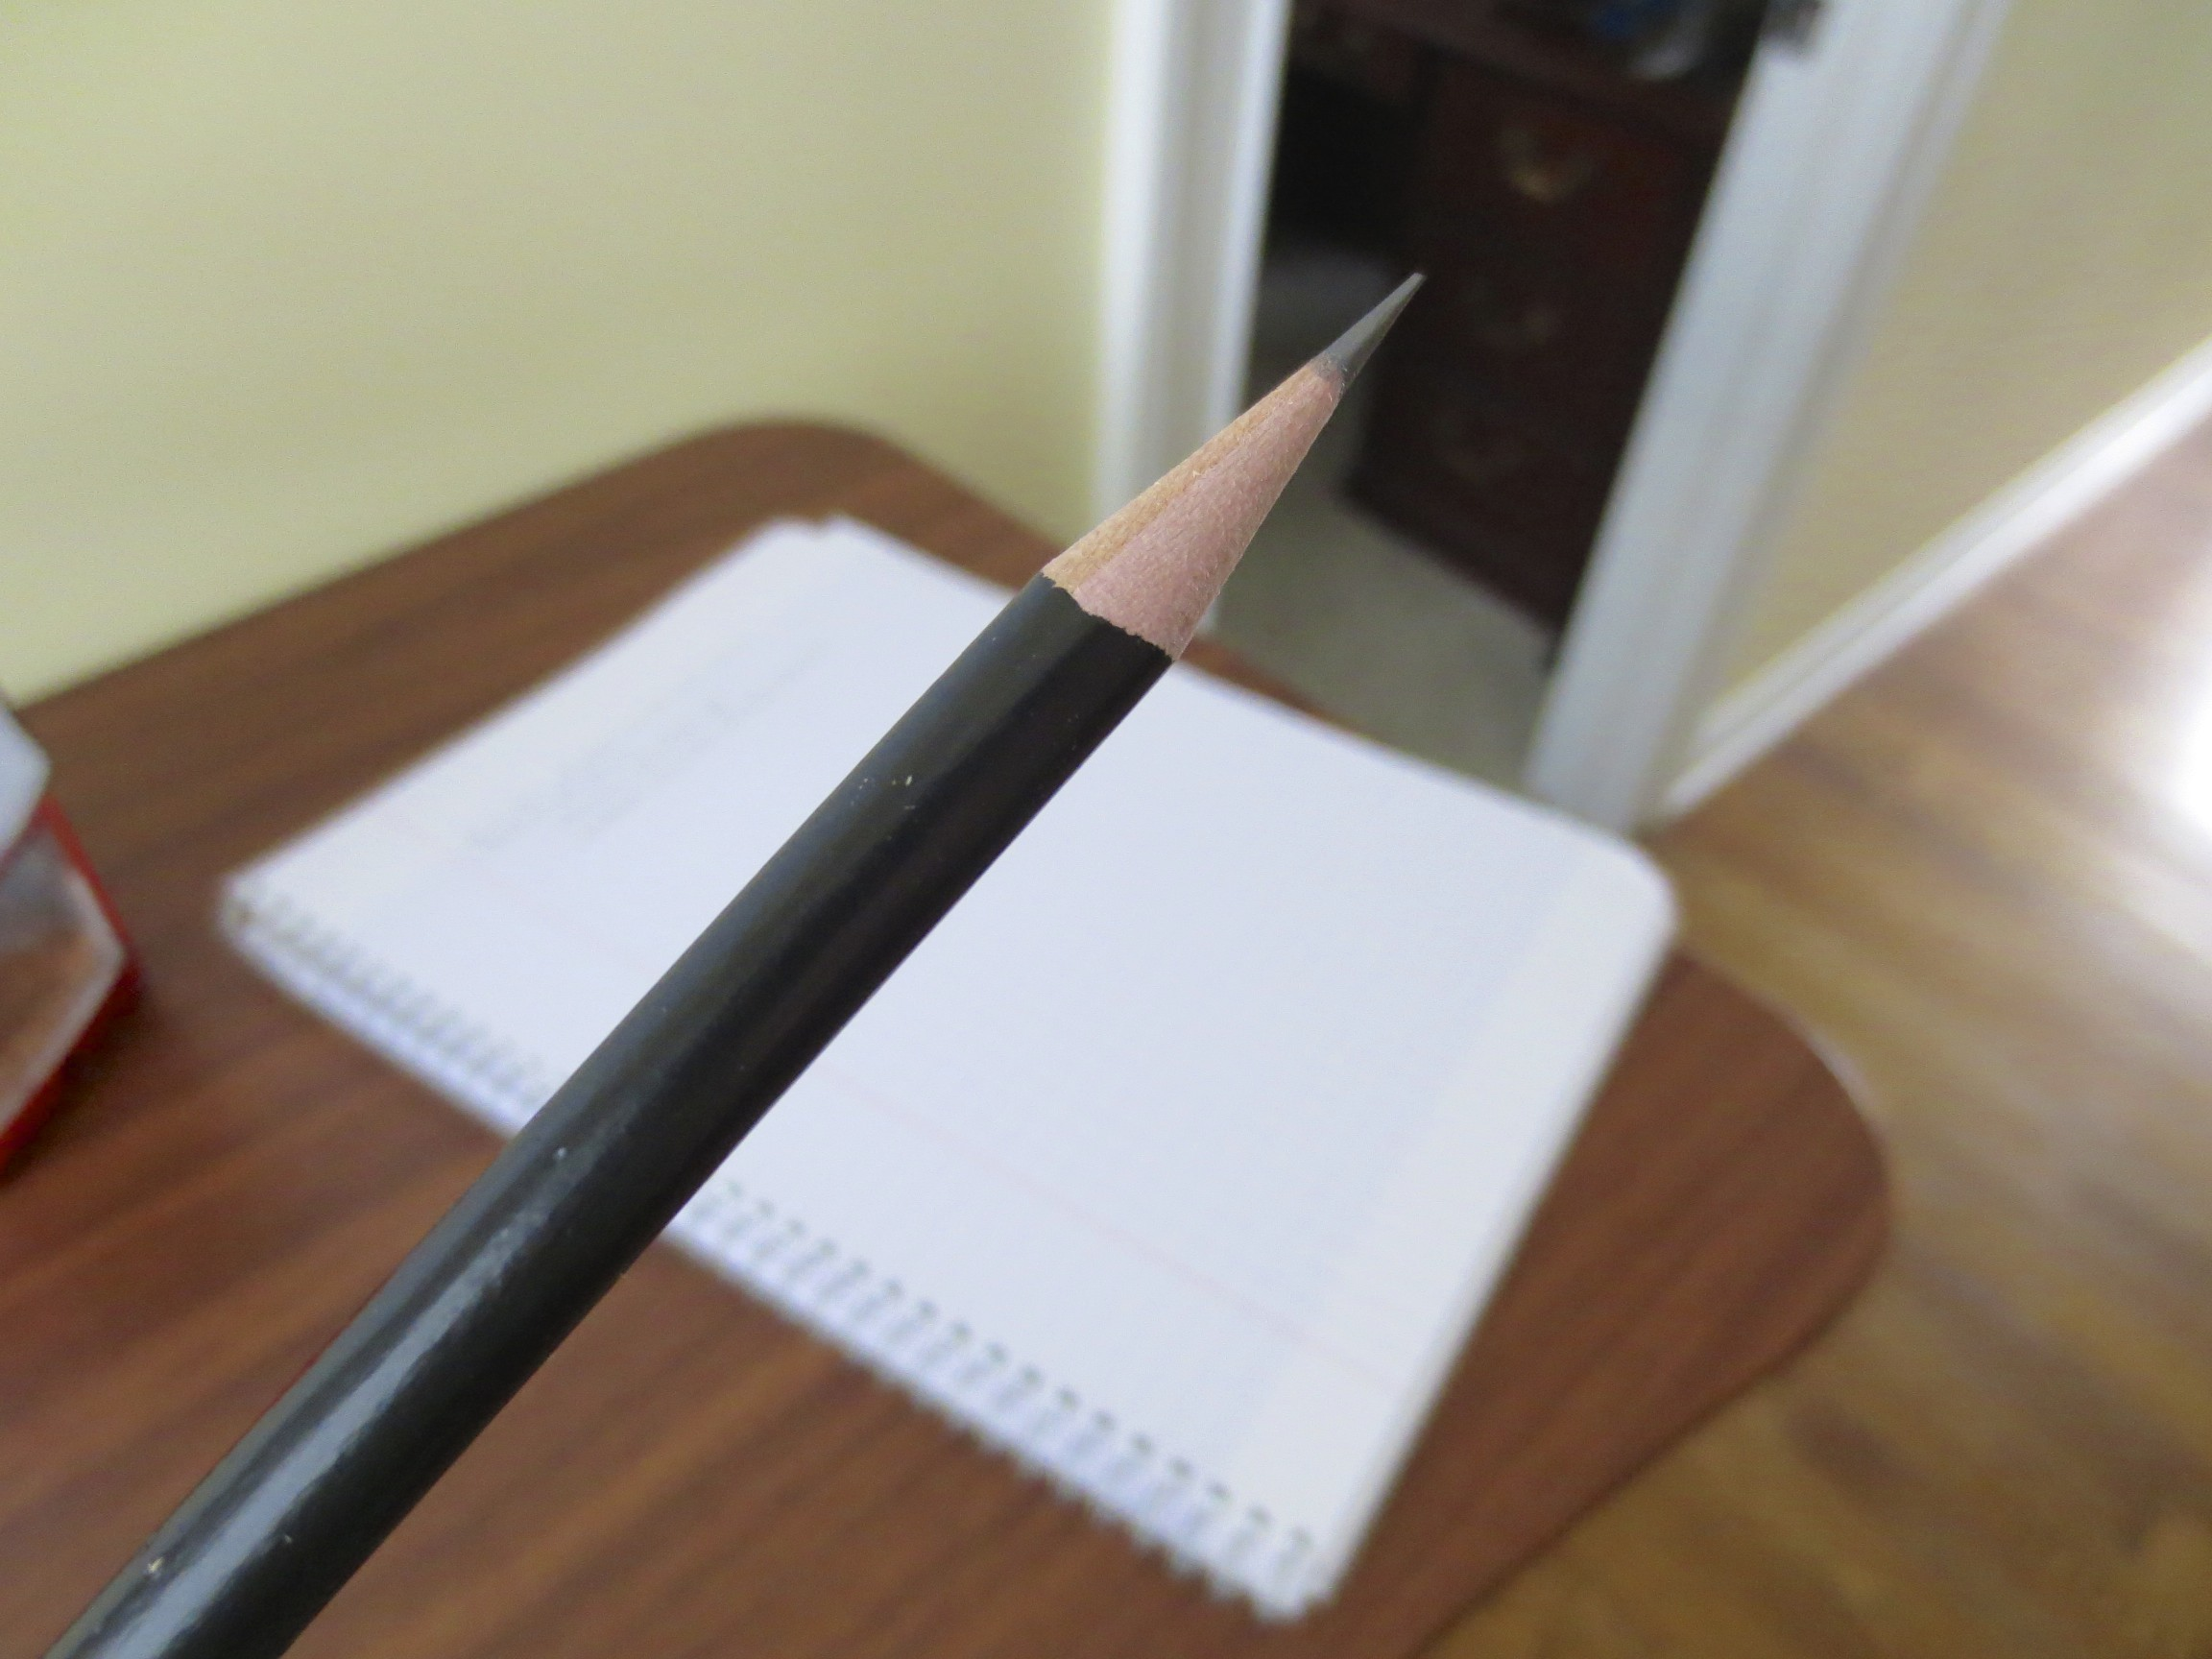 Black Rounded Pencil, Unmarked.